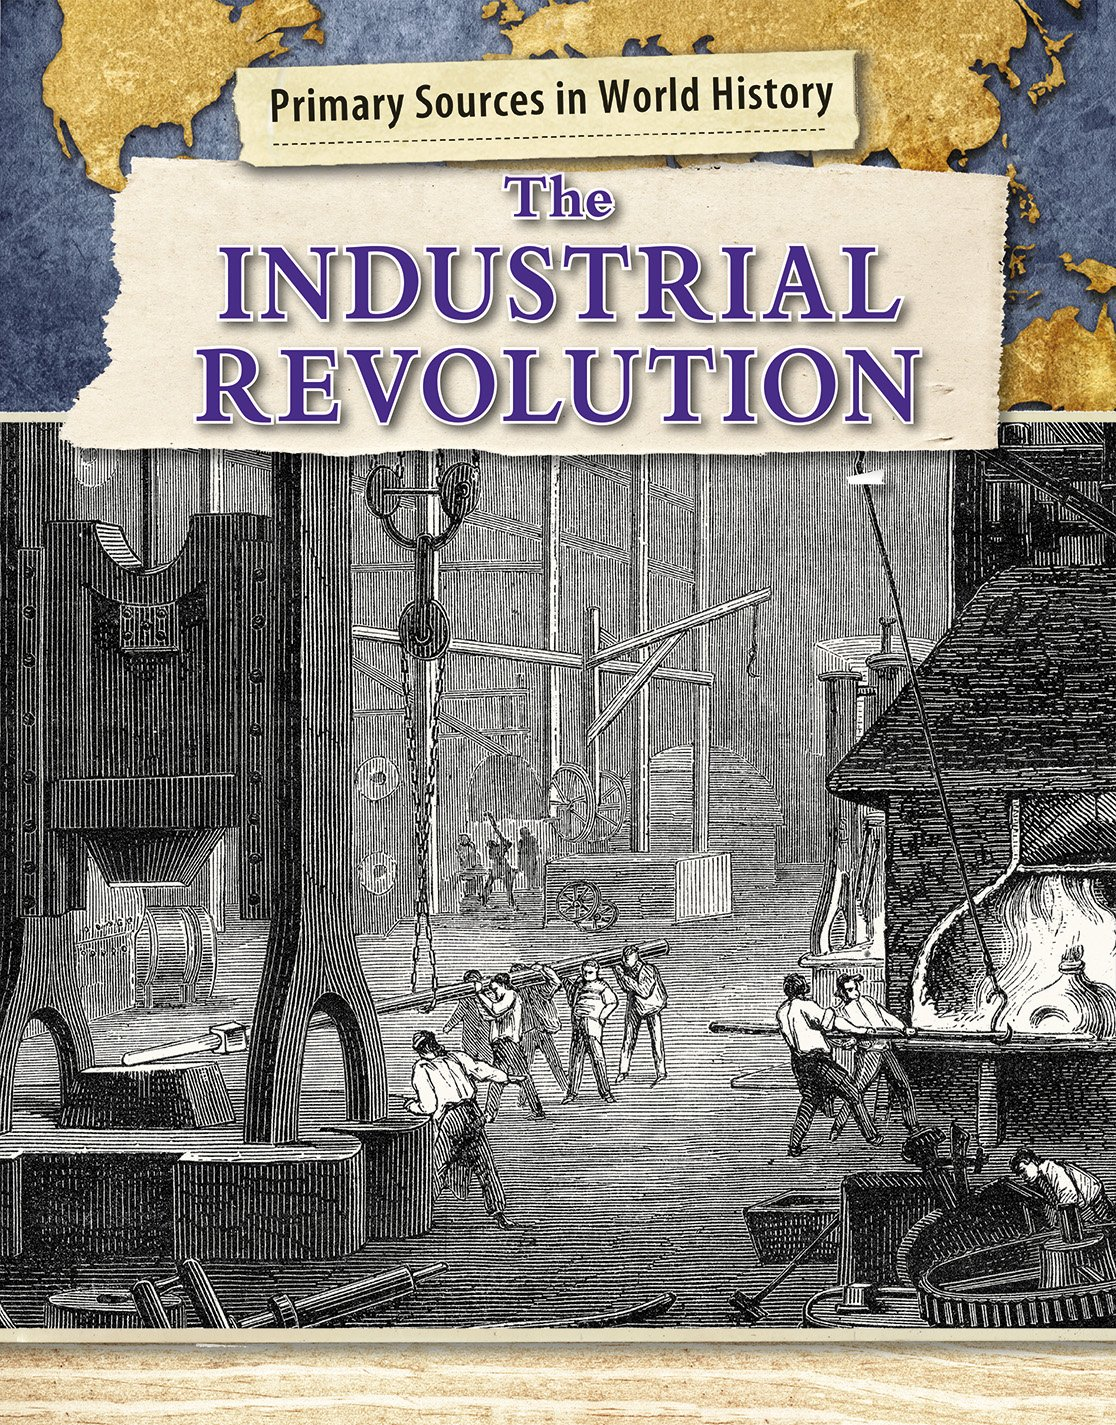 primary sources from industrial revolution